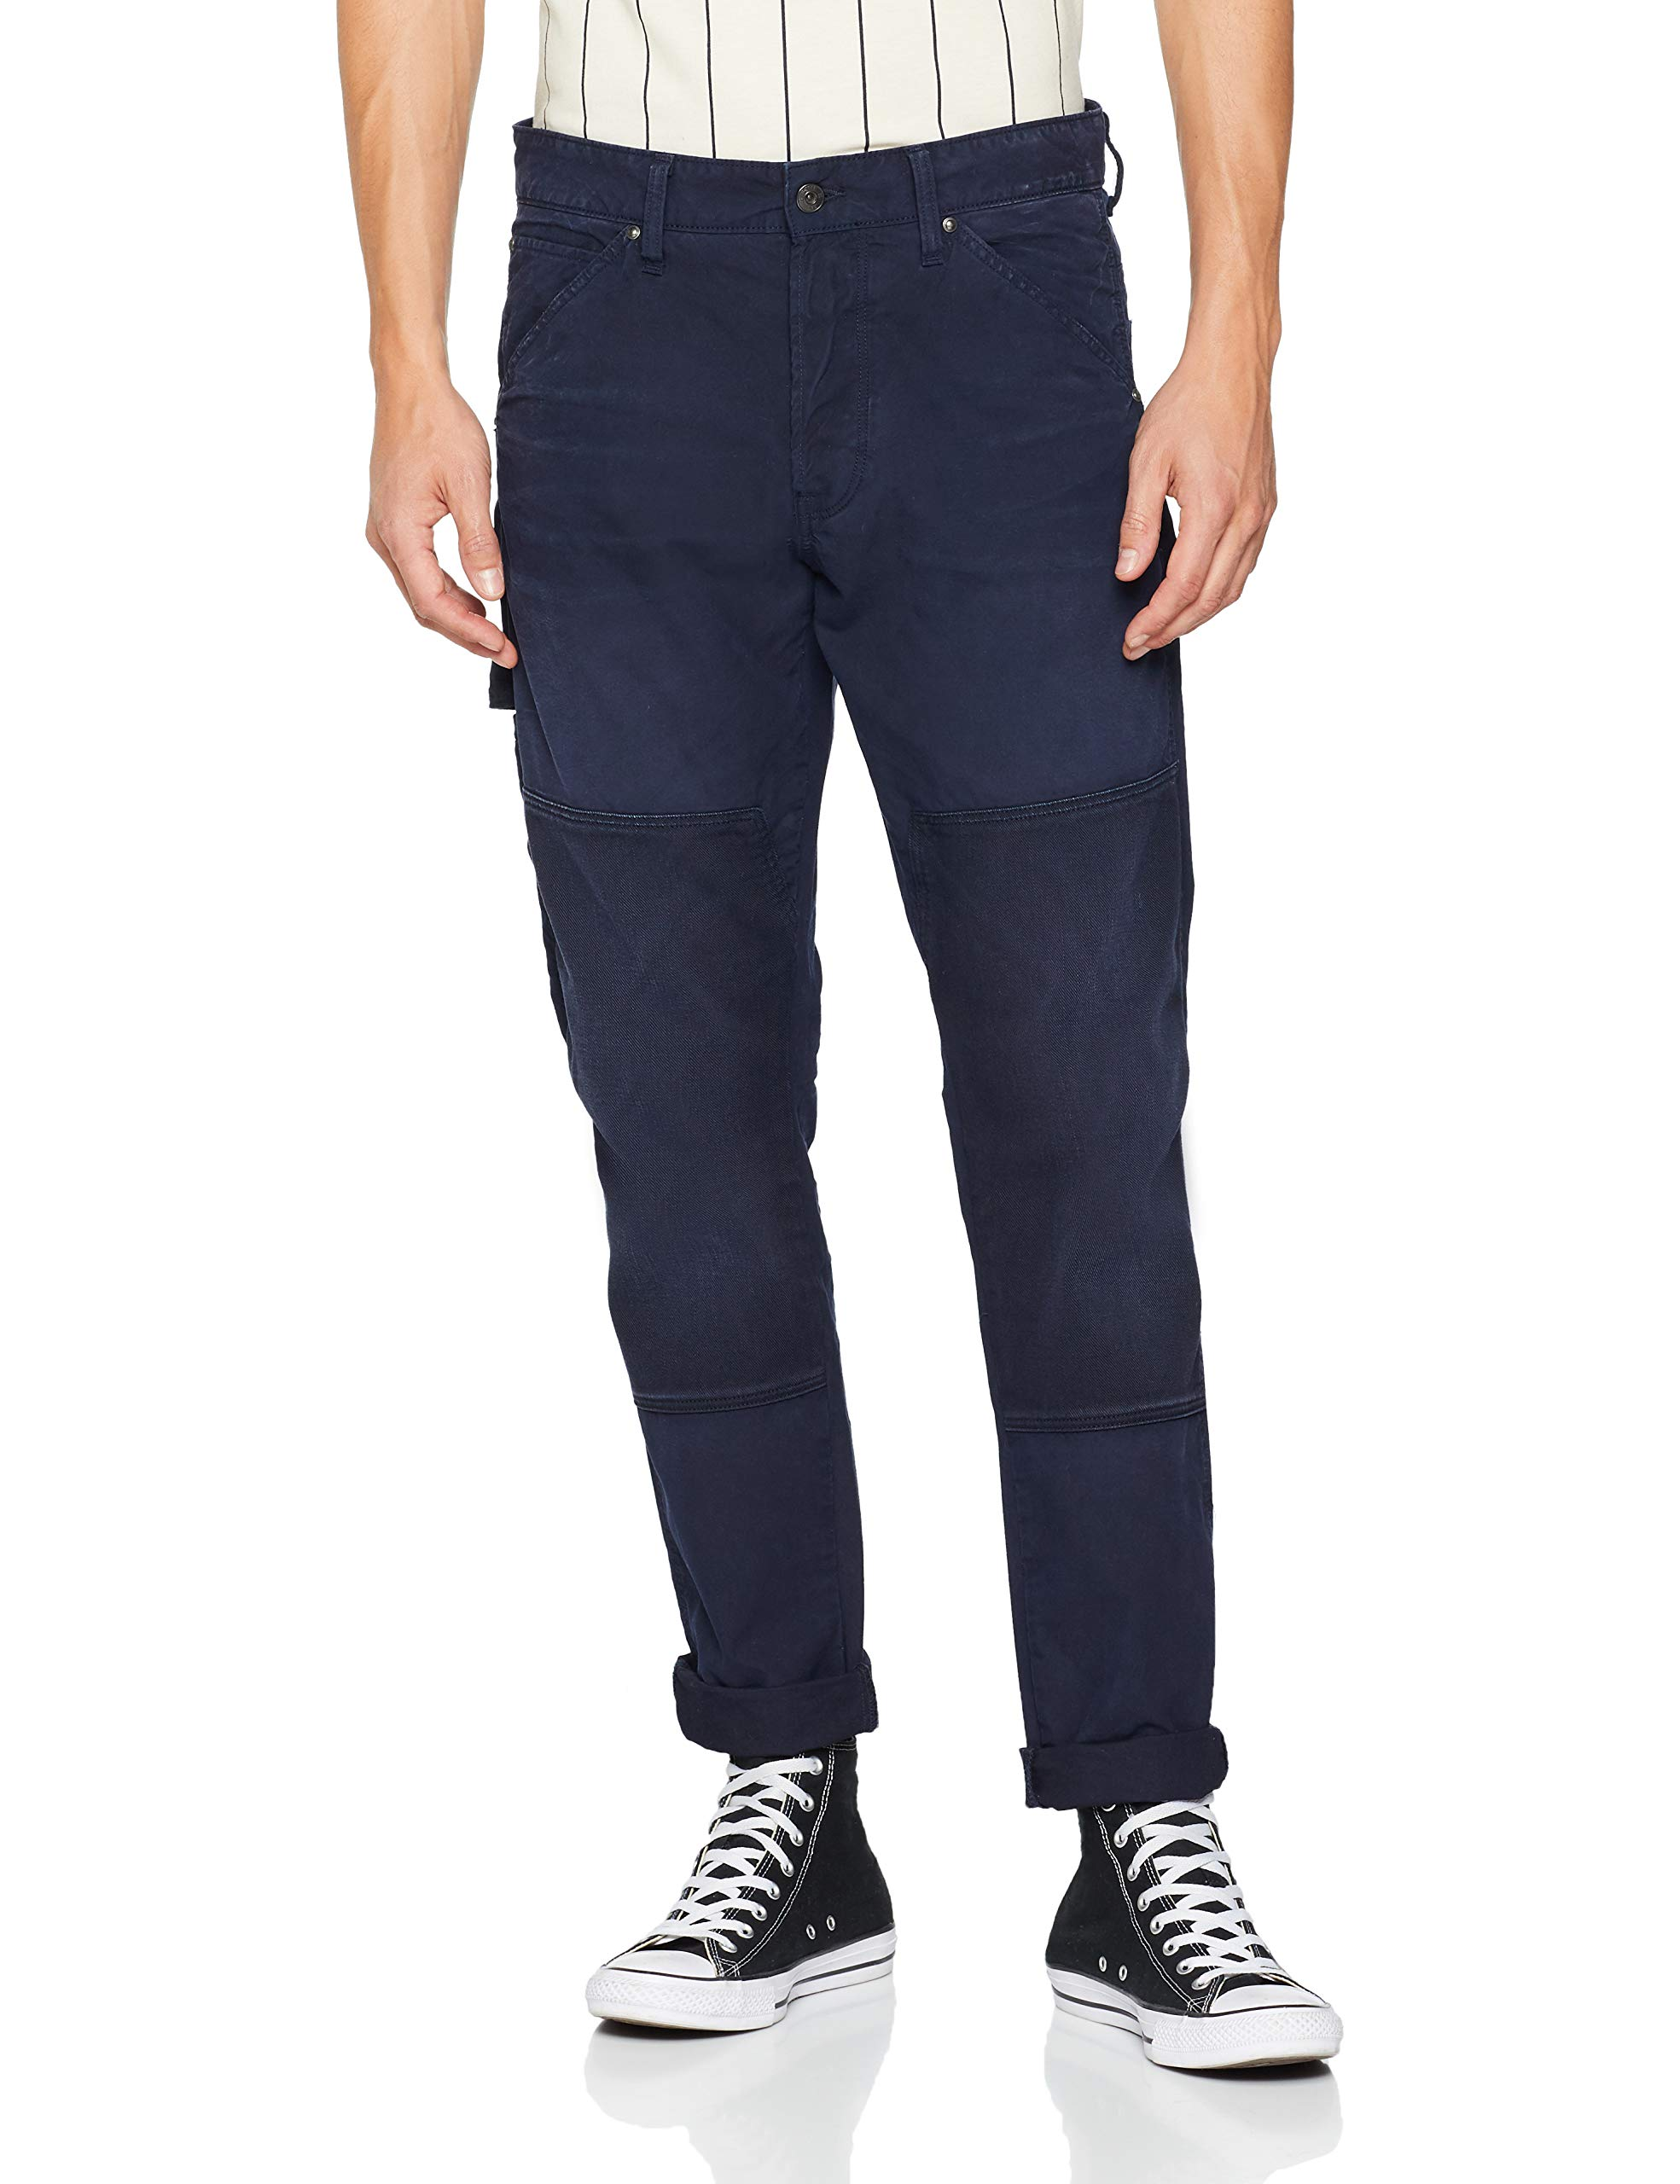 star Blue Homme Classic G 9740 606736w34l Faeroes Tapered Raw JeansBleusartho j54RLA